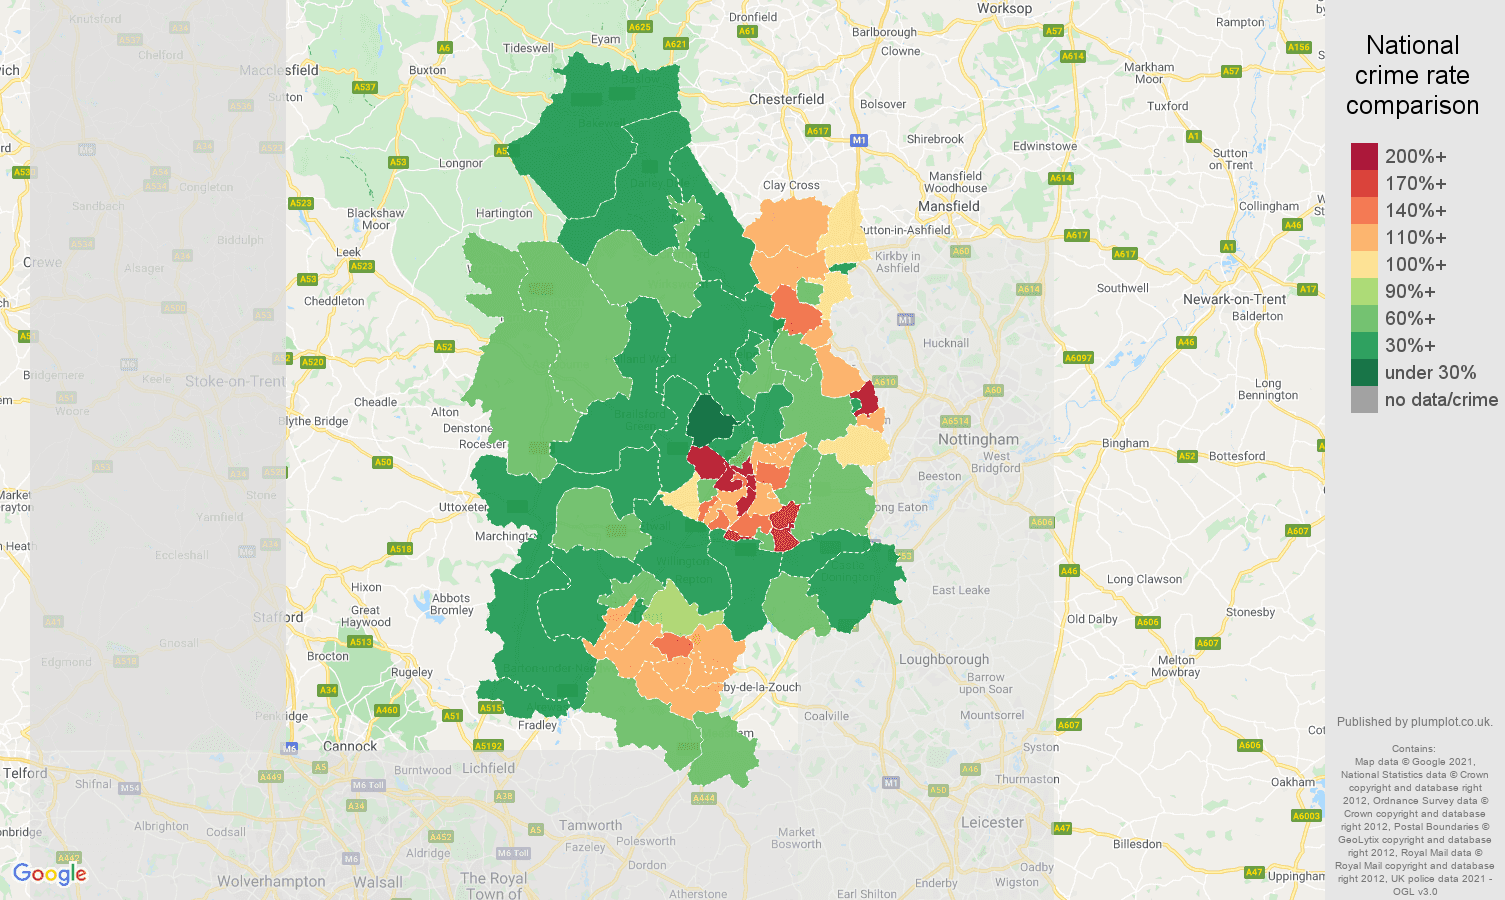 Derby violent crime rate comparison map